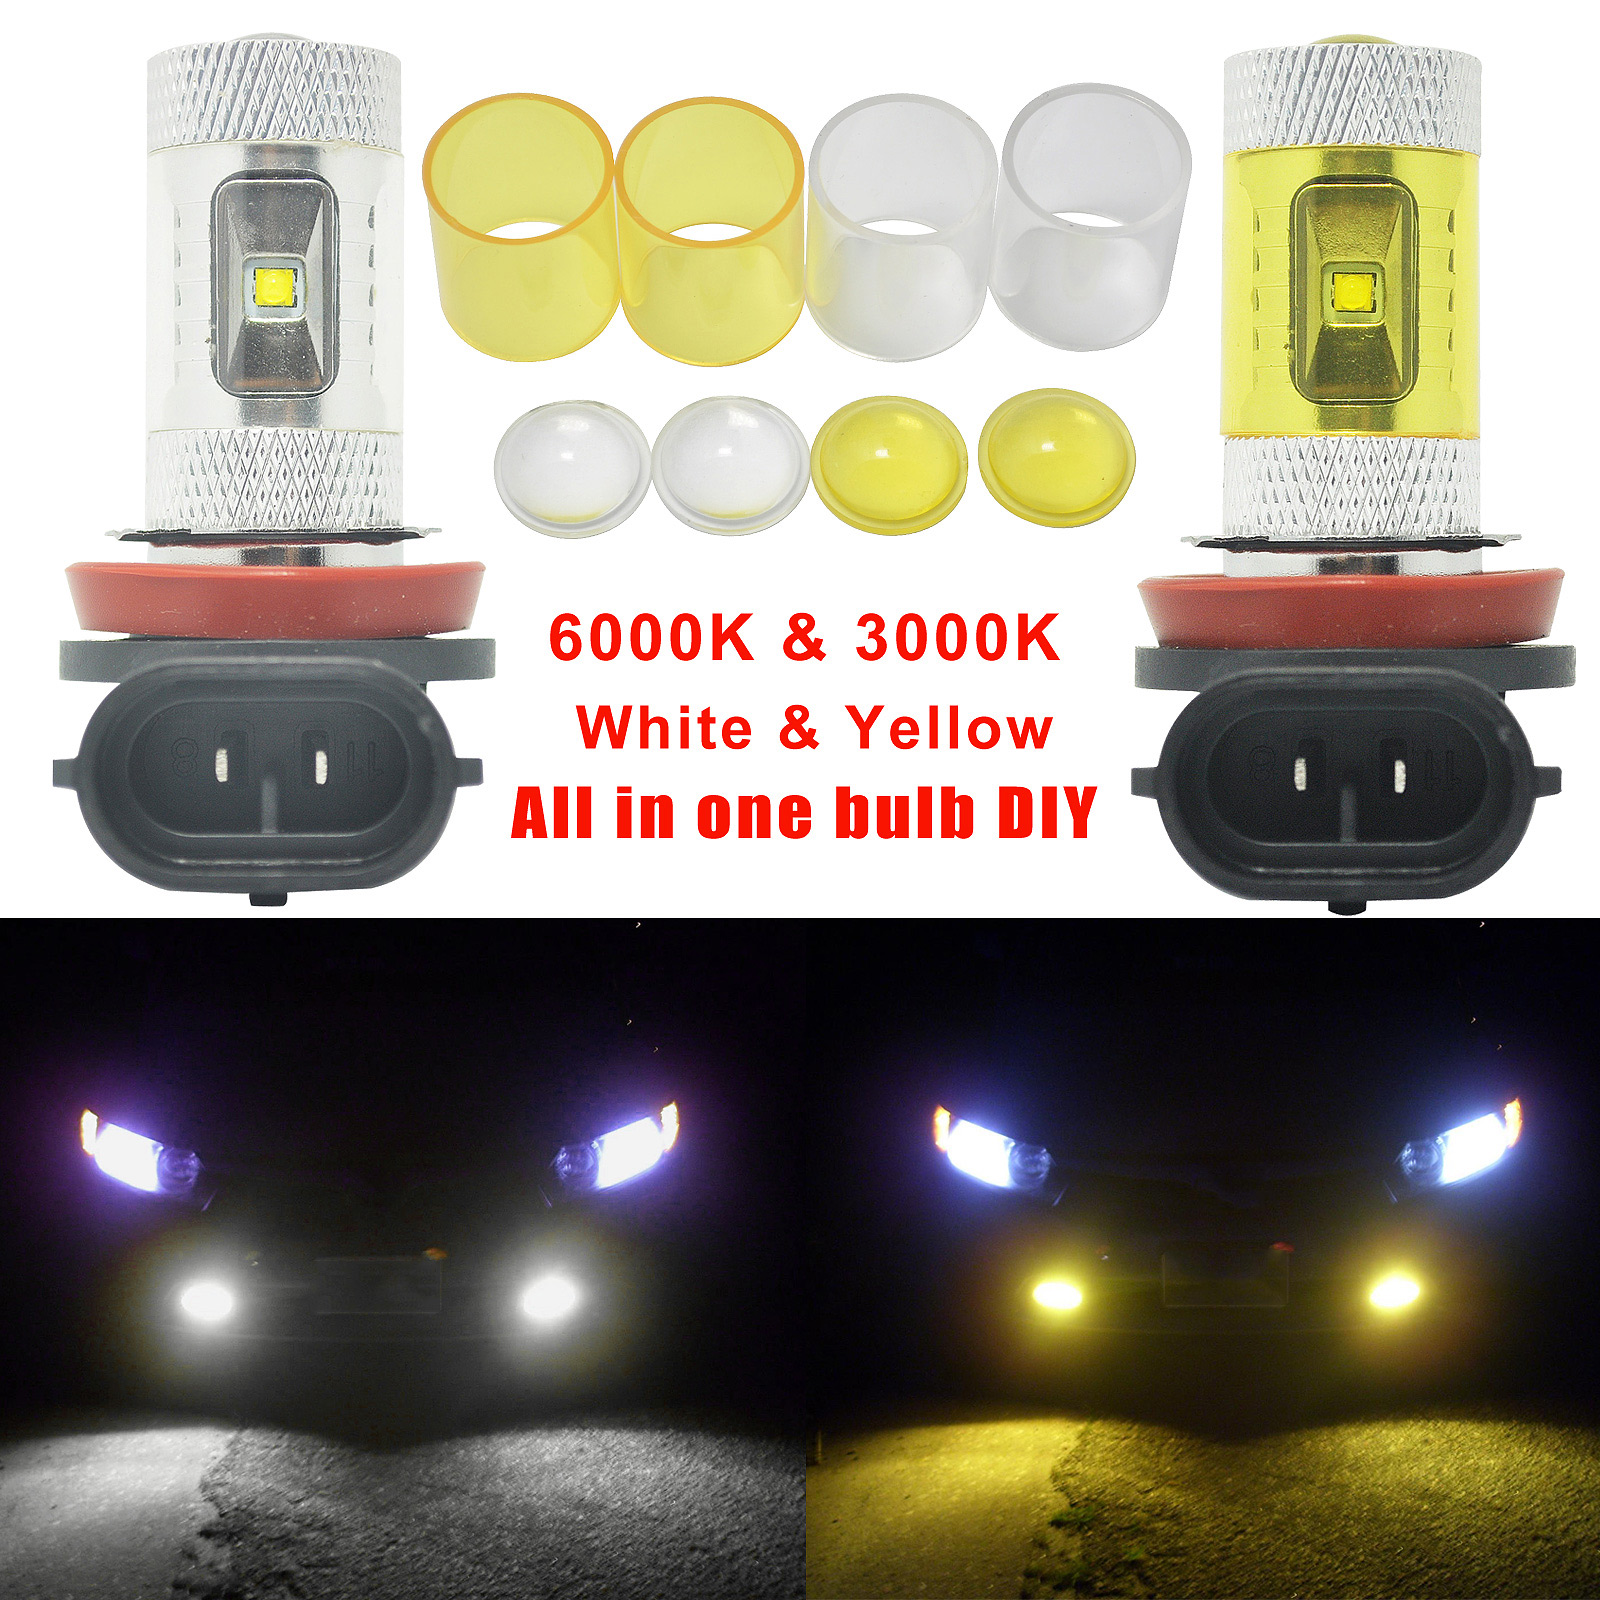 2pcs Car H8 H11 30W Dual Color Car LED Projector Fog Driving Lights White Yellow Lamp mp620 mp622 mp625 projector color wheel mp620 mp622 mp625